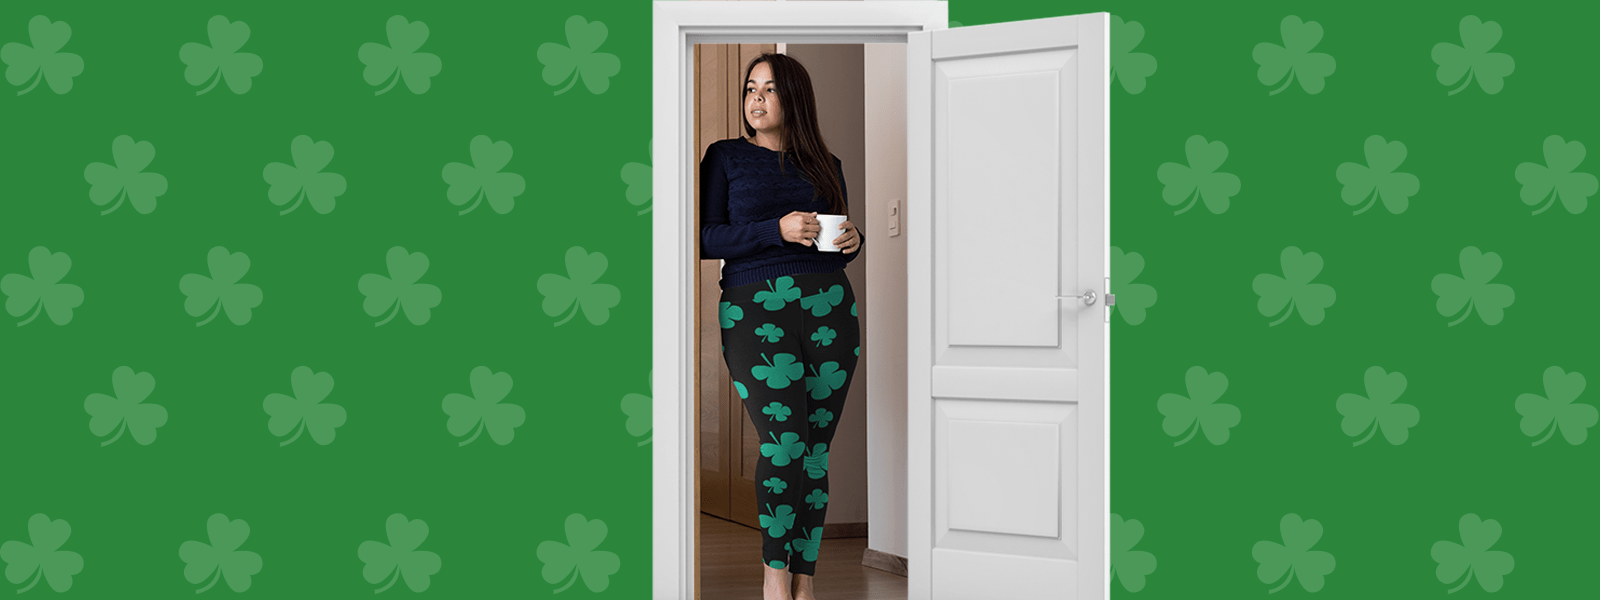 10 Accessories for an at Home St. Patrick's Parade